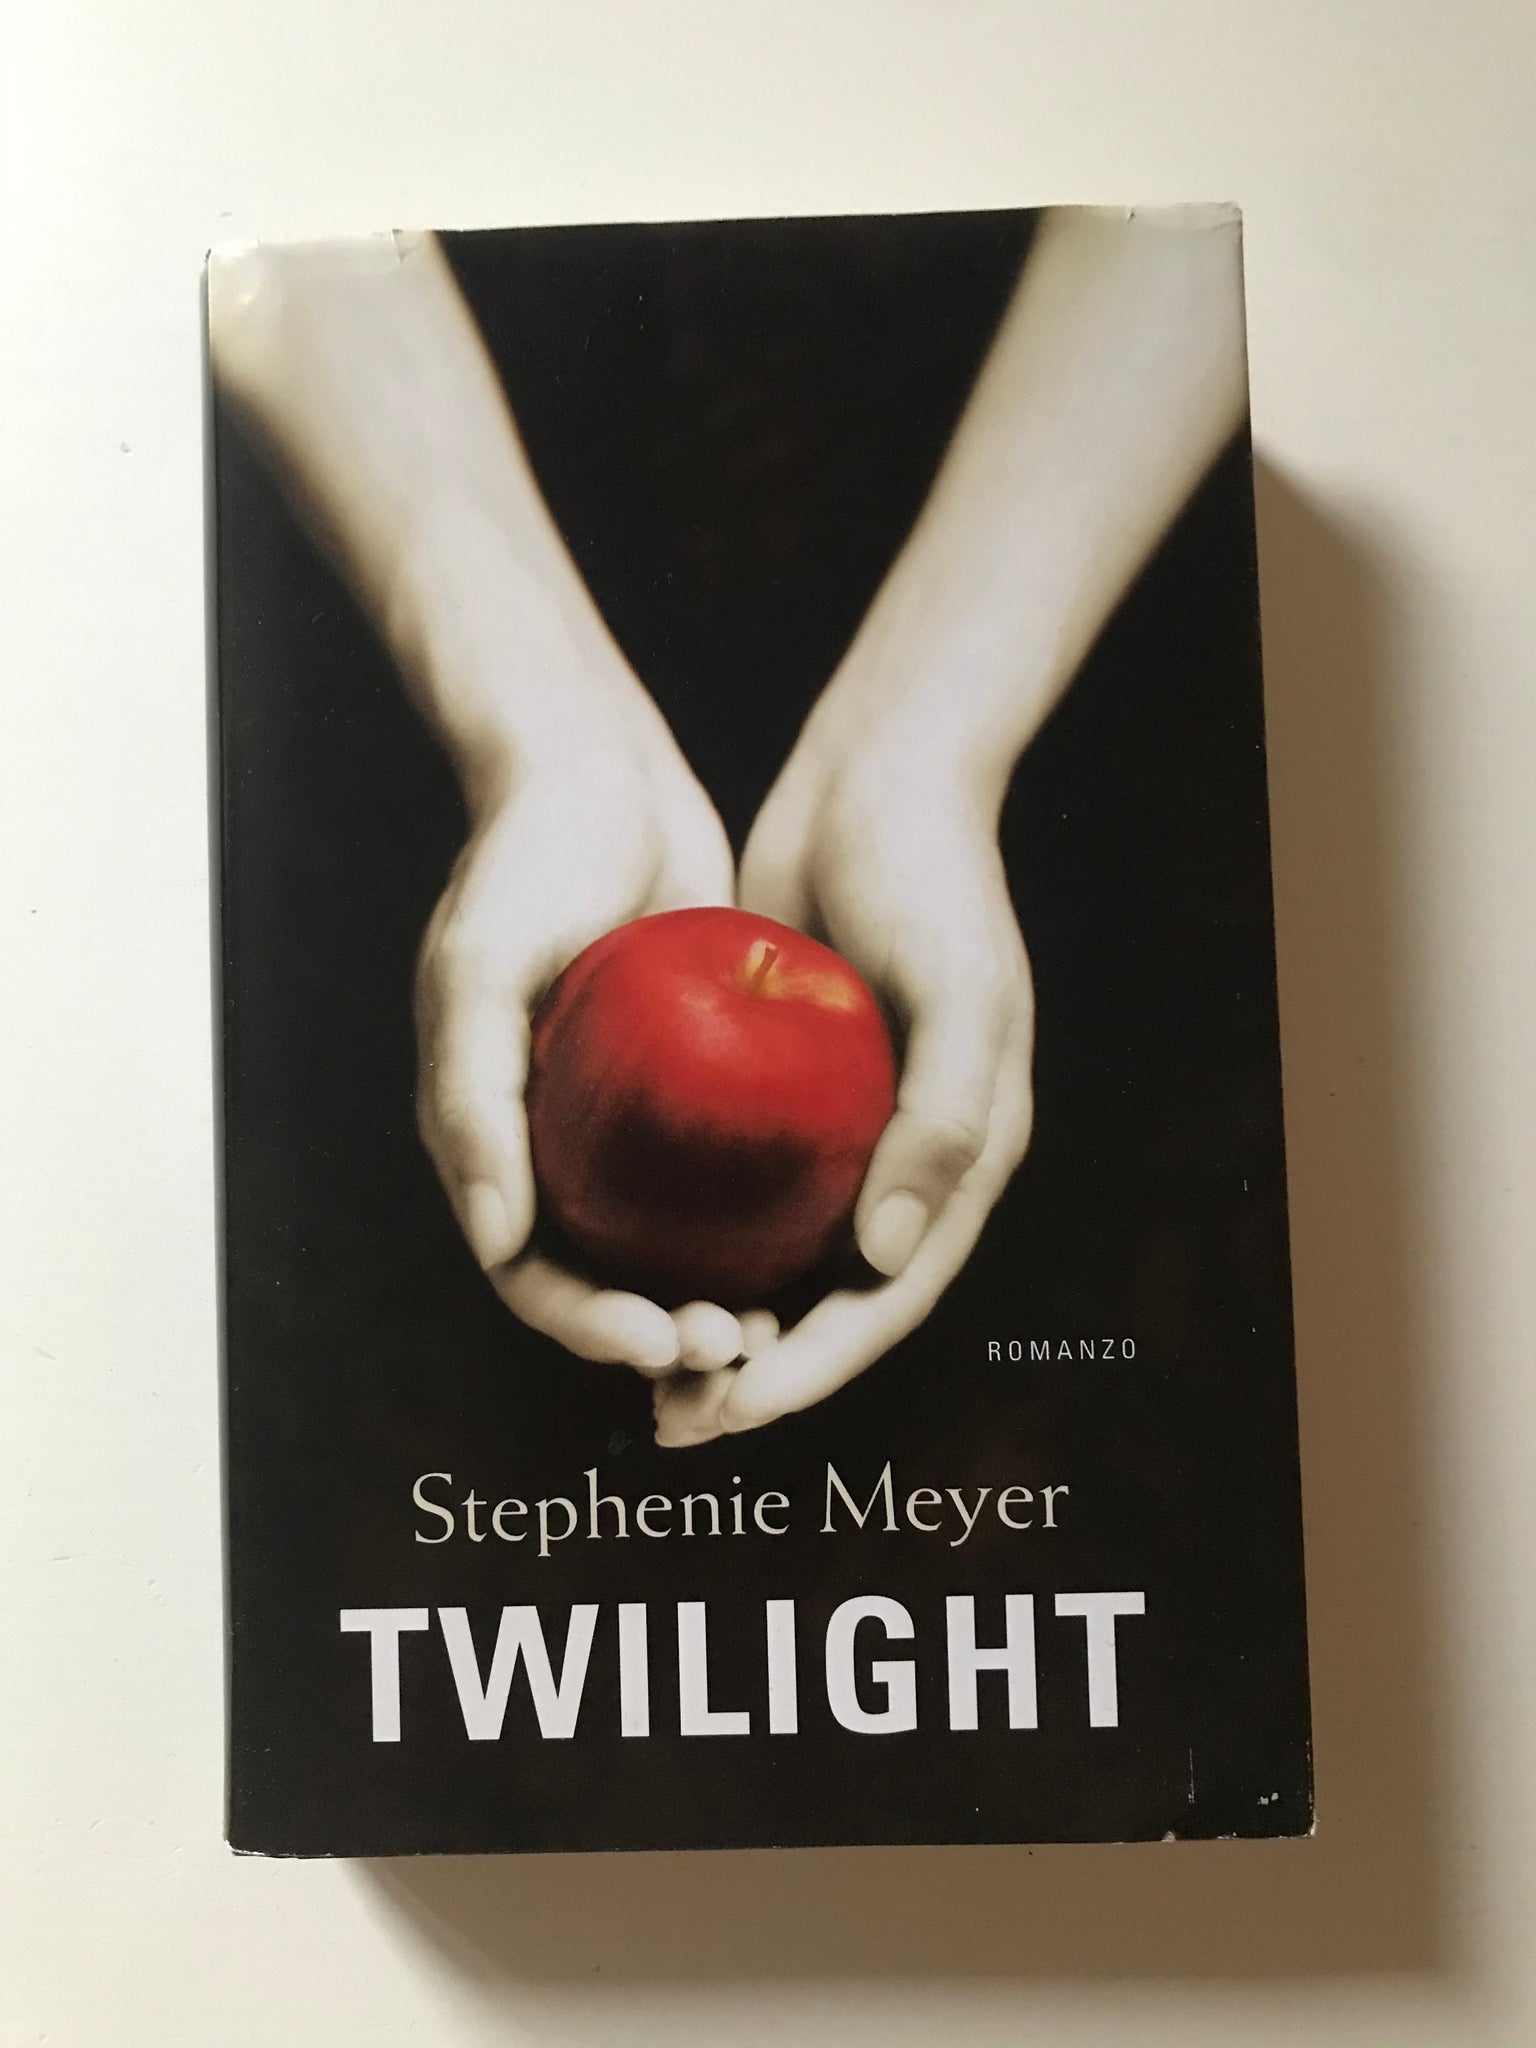 Stephenie Mayer - Twilight